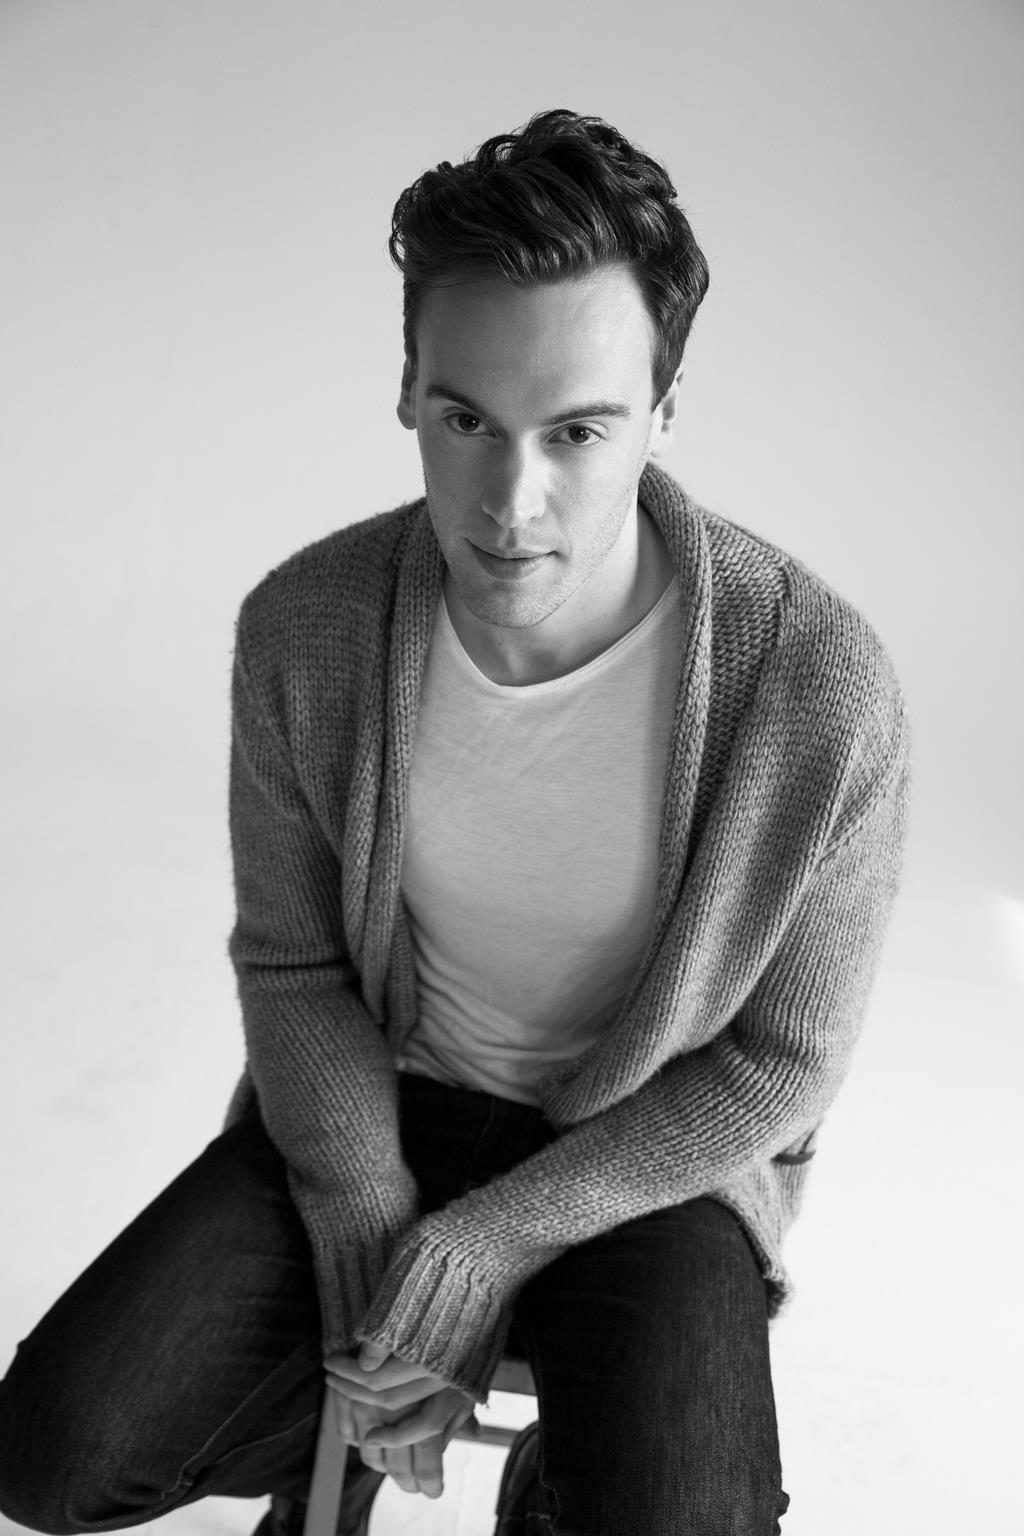 Eric Bergen photographed by Collin Stark